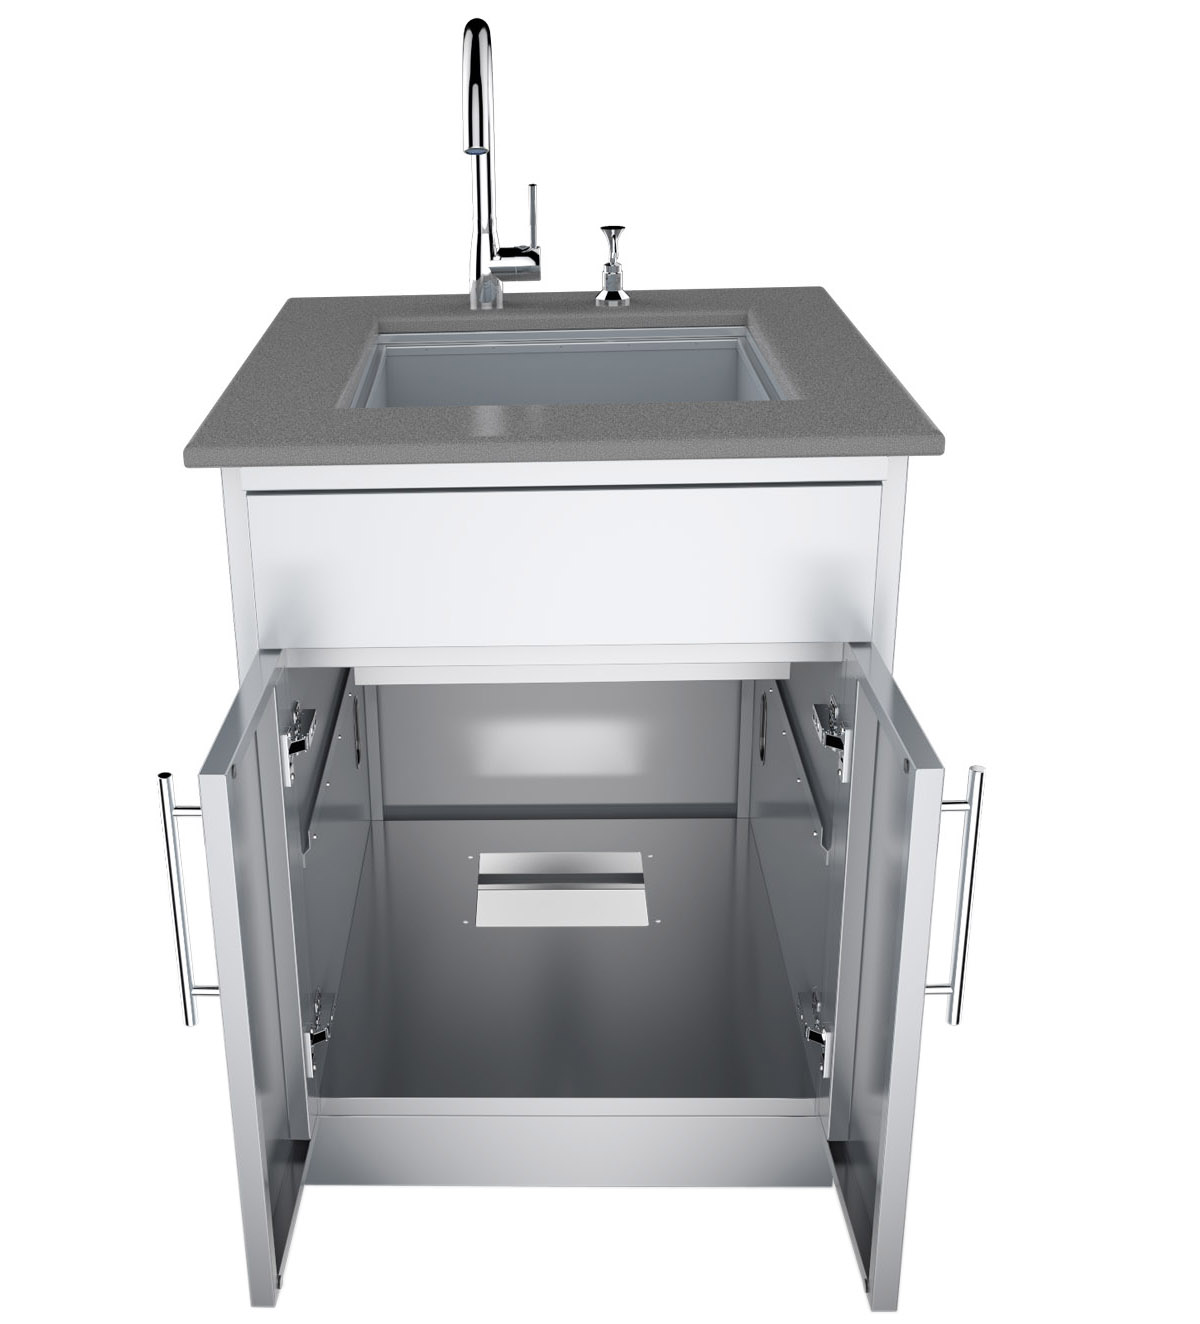 Stainless steel Cabinets-DOOR Cabinets: sunstonemetalproducts.com